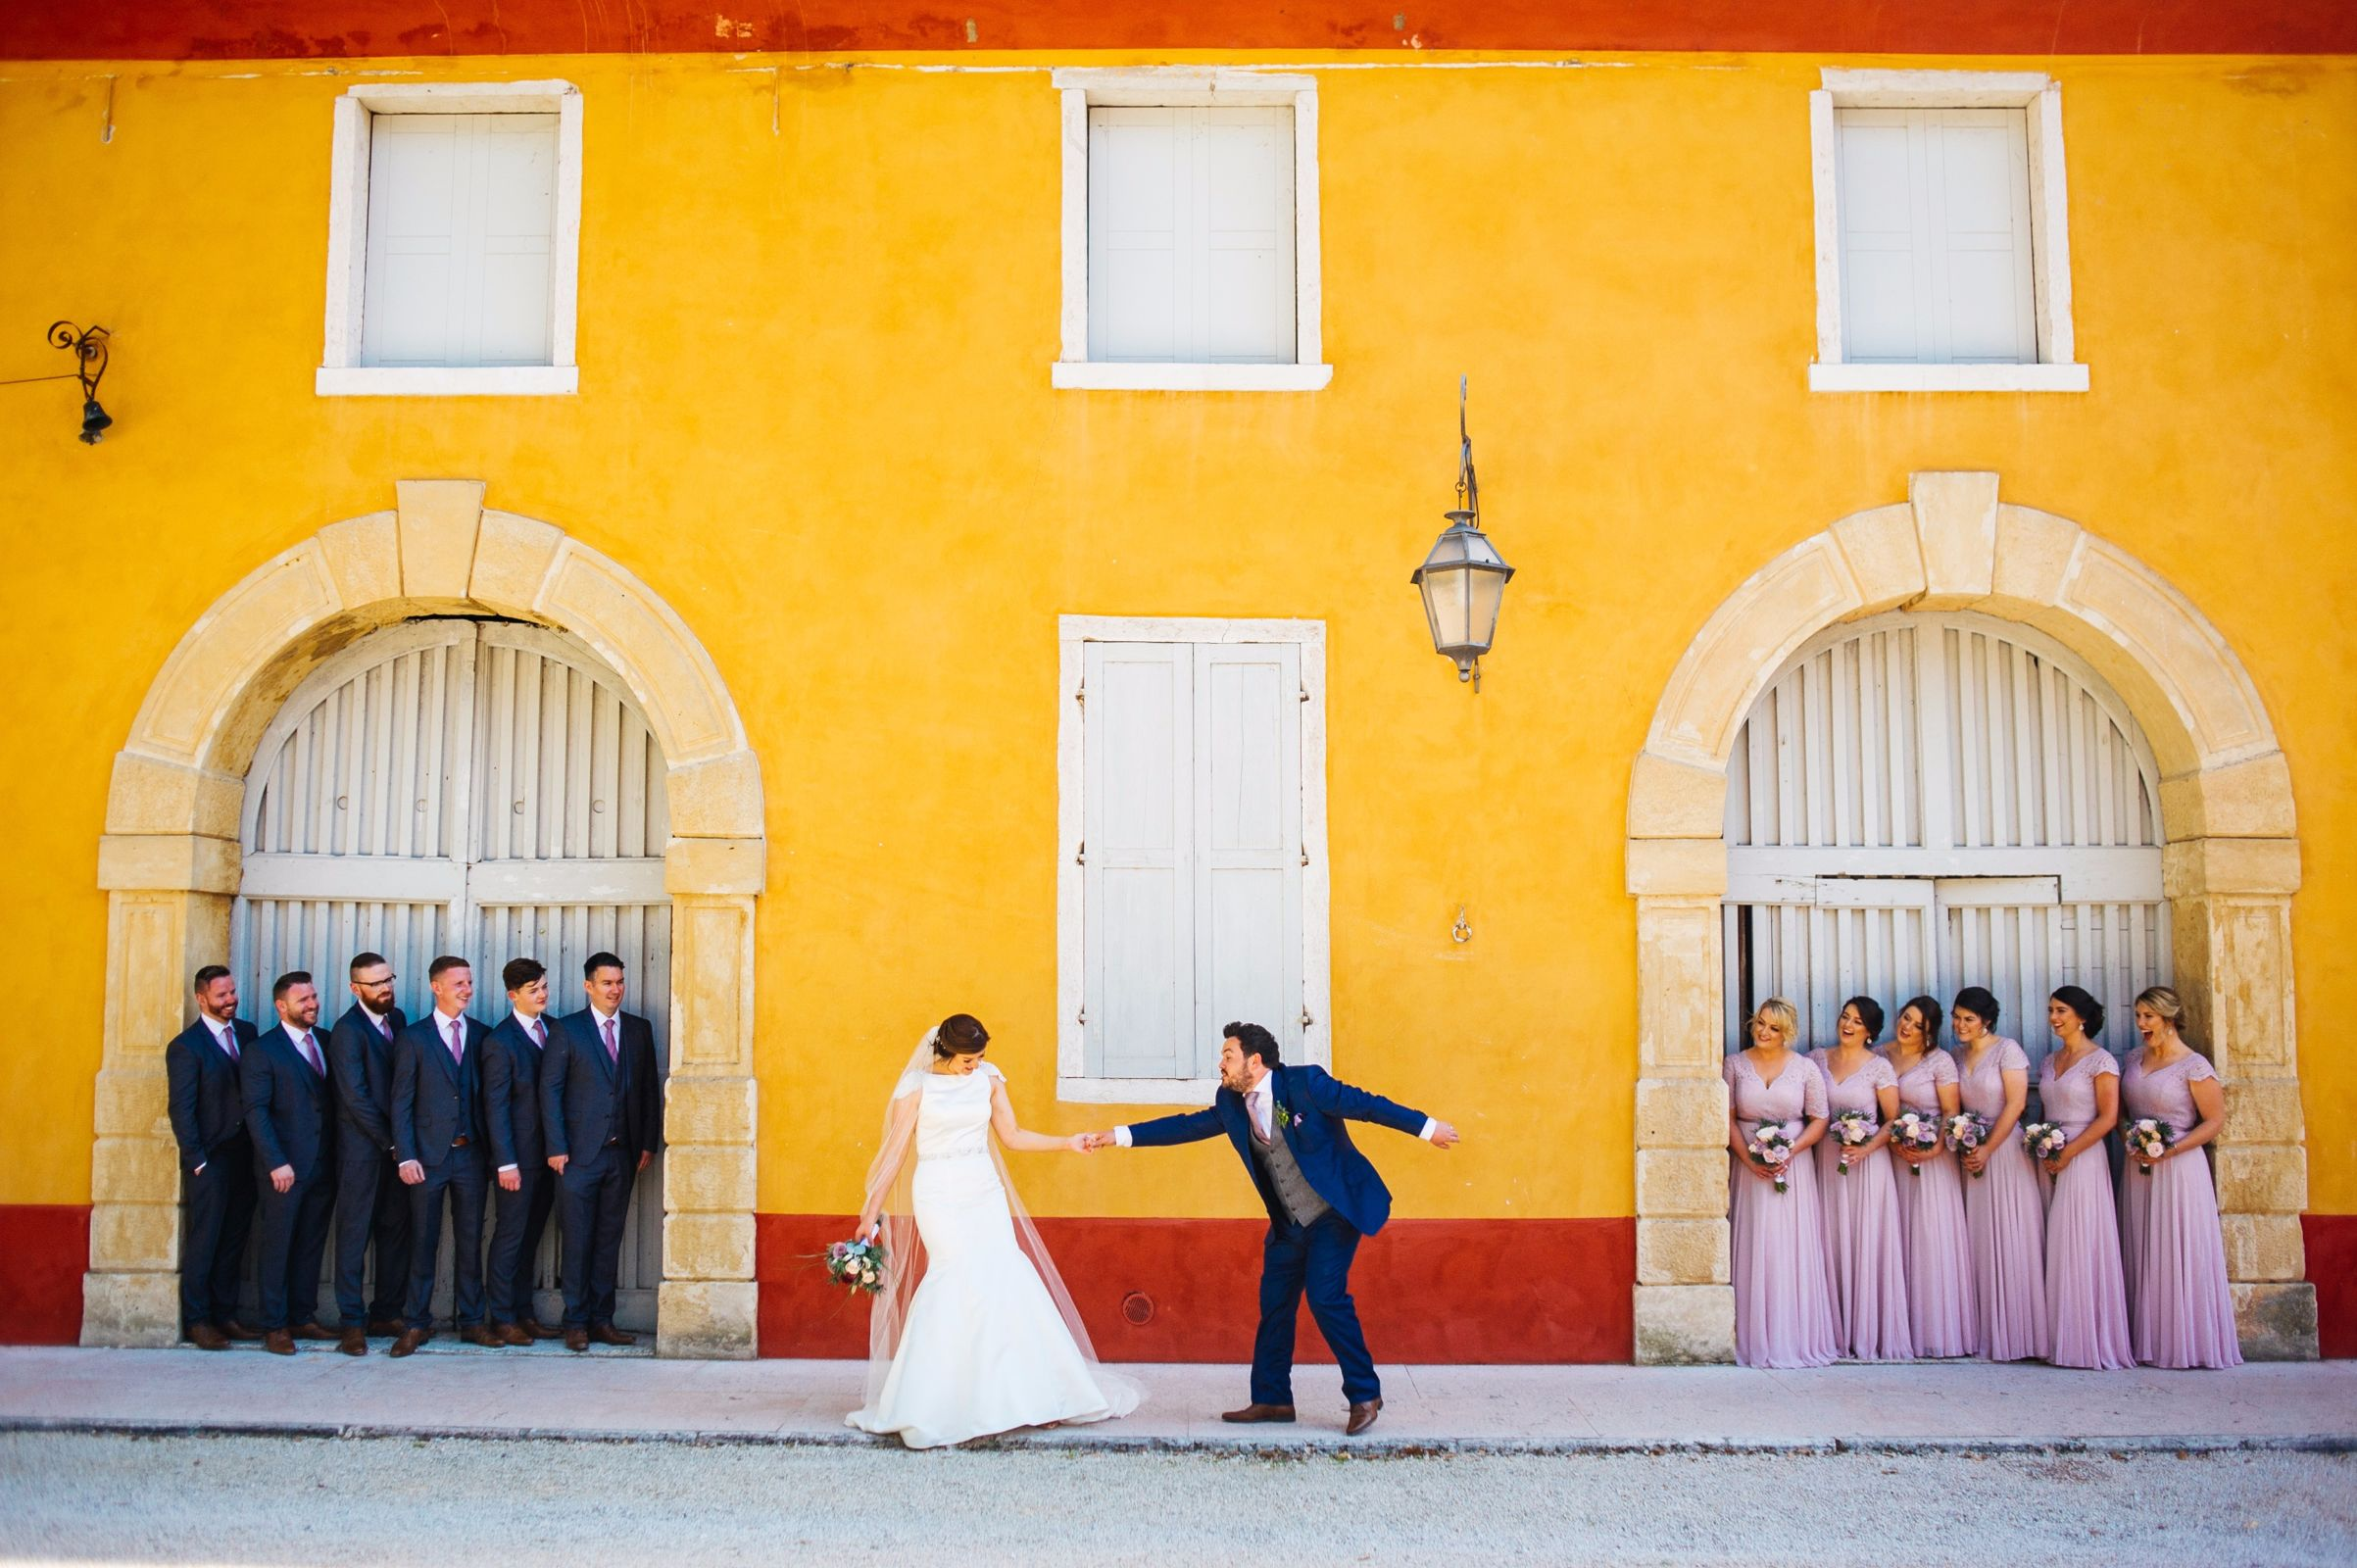 Aimee & Ronan - Destination wedding in Italy